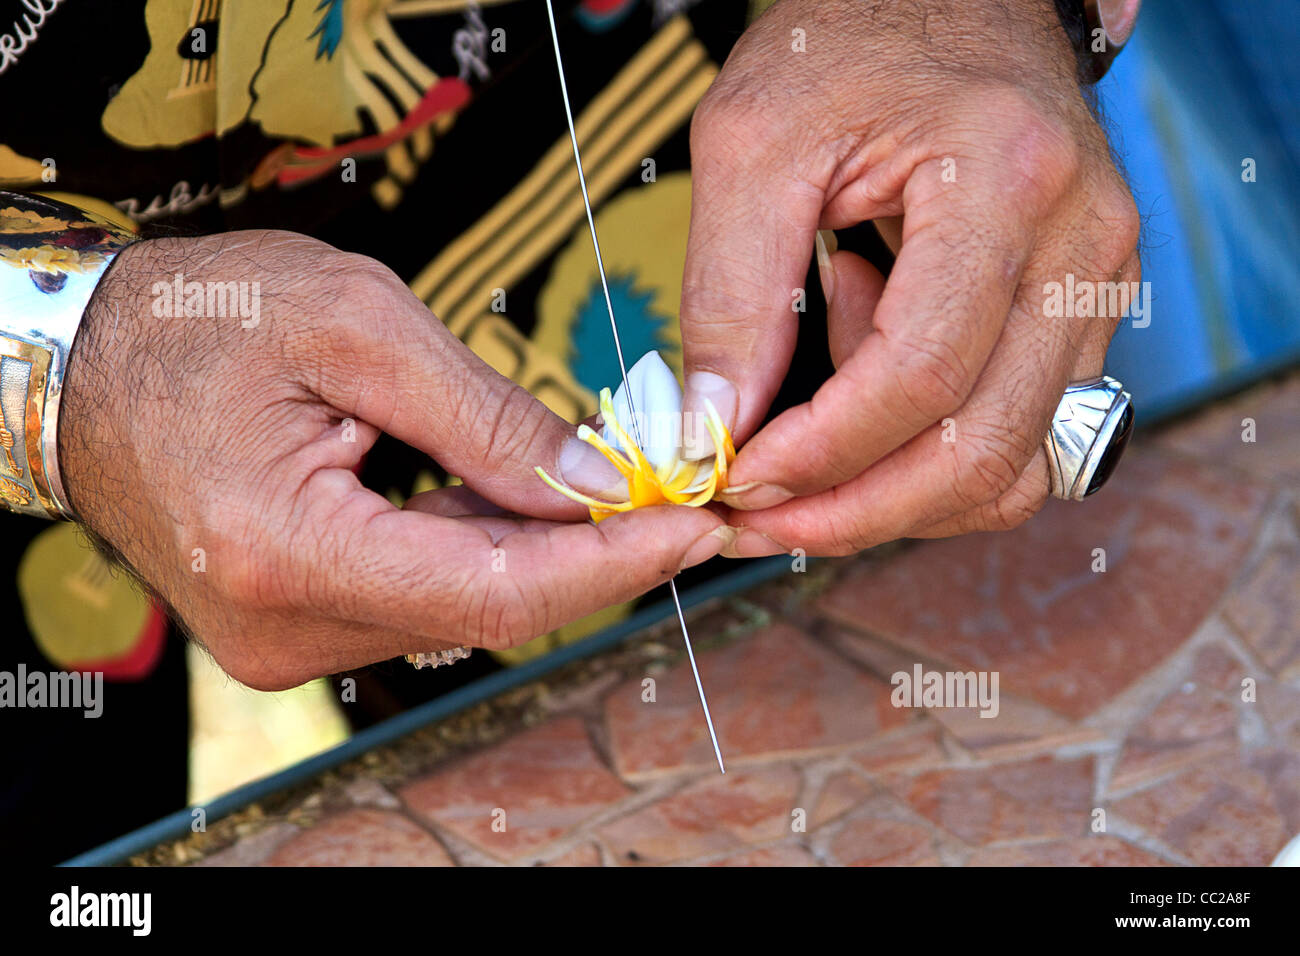 Closeup of local man stringing plumeria (frangipani) flowers to make a lei on Molokai, Hawaii, USA. - Stock Image